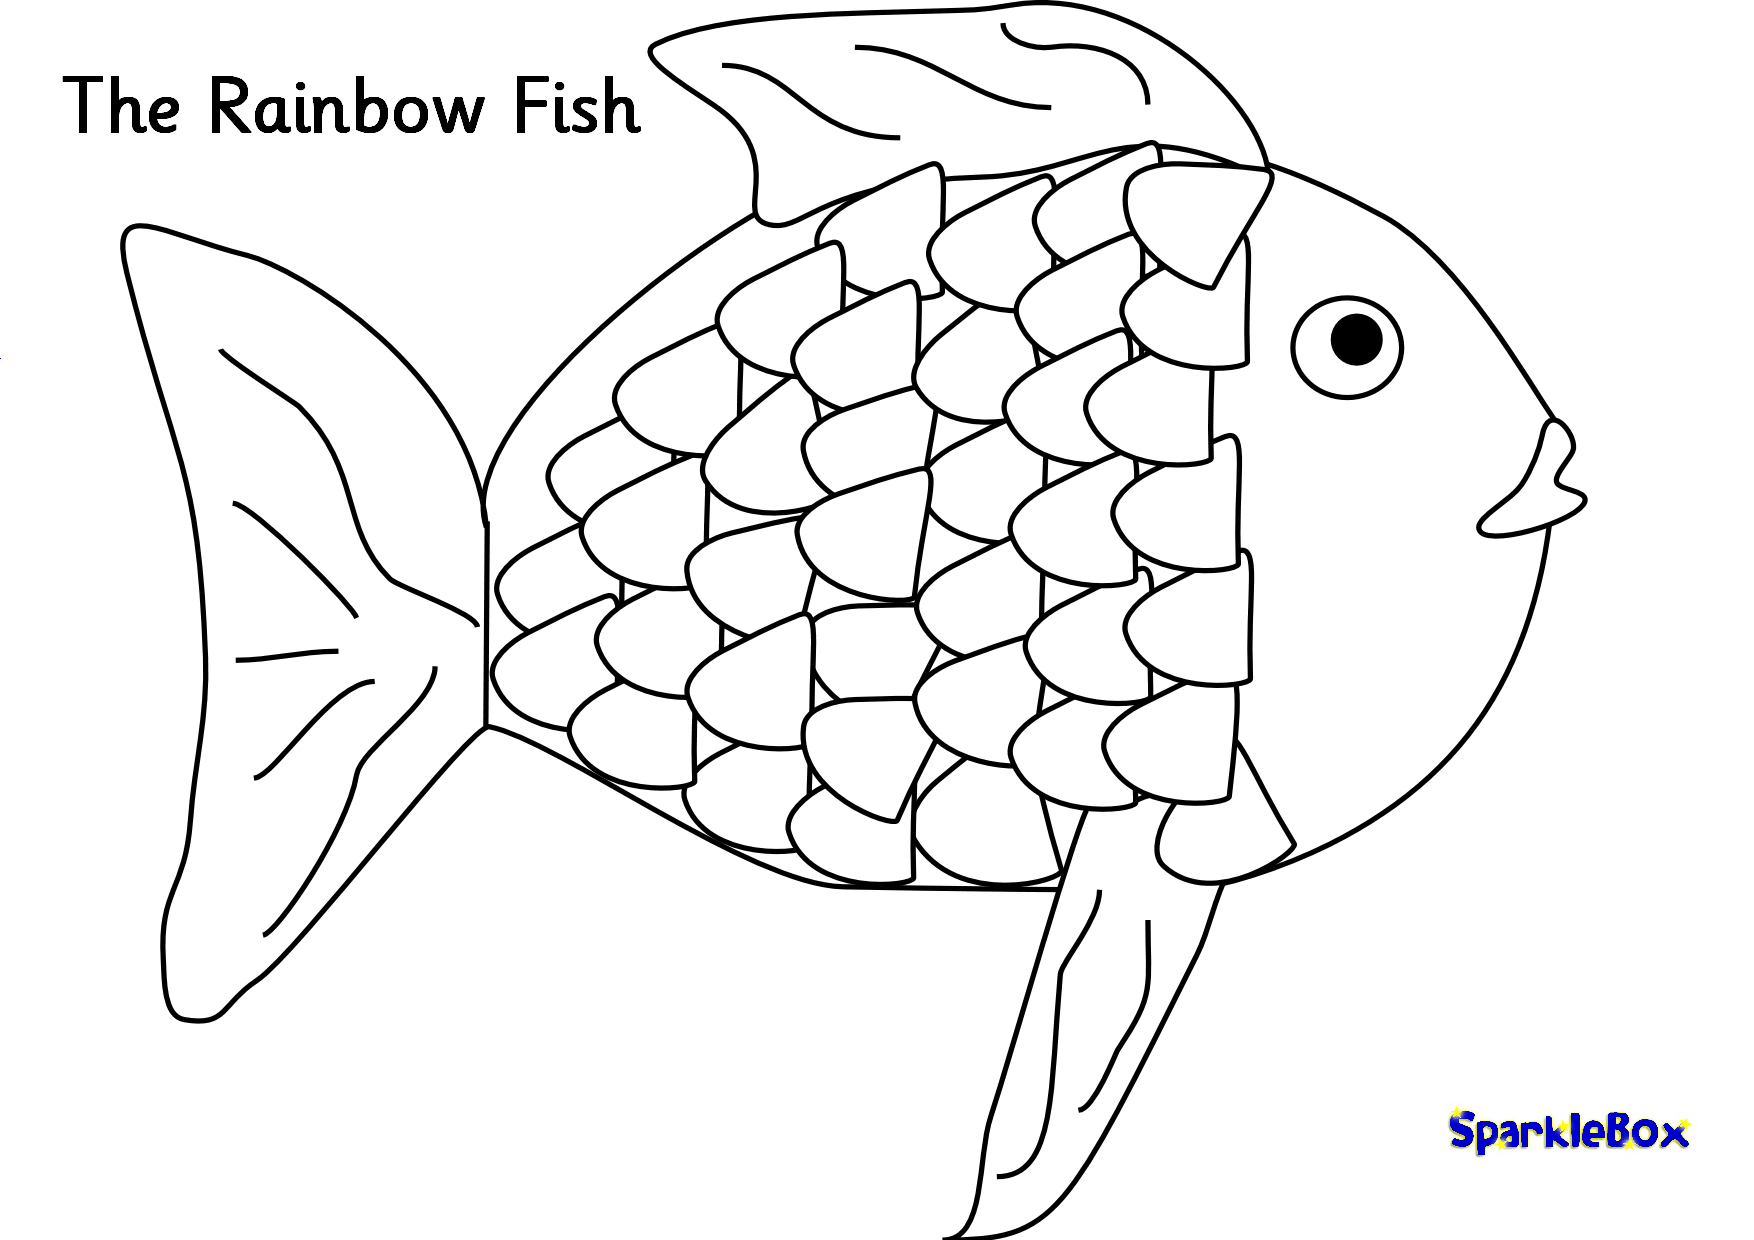 rainbow-fish-coloring-page-0001-q1